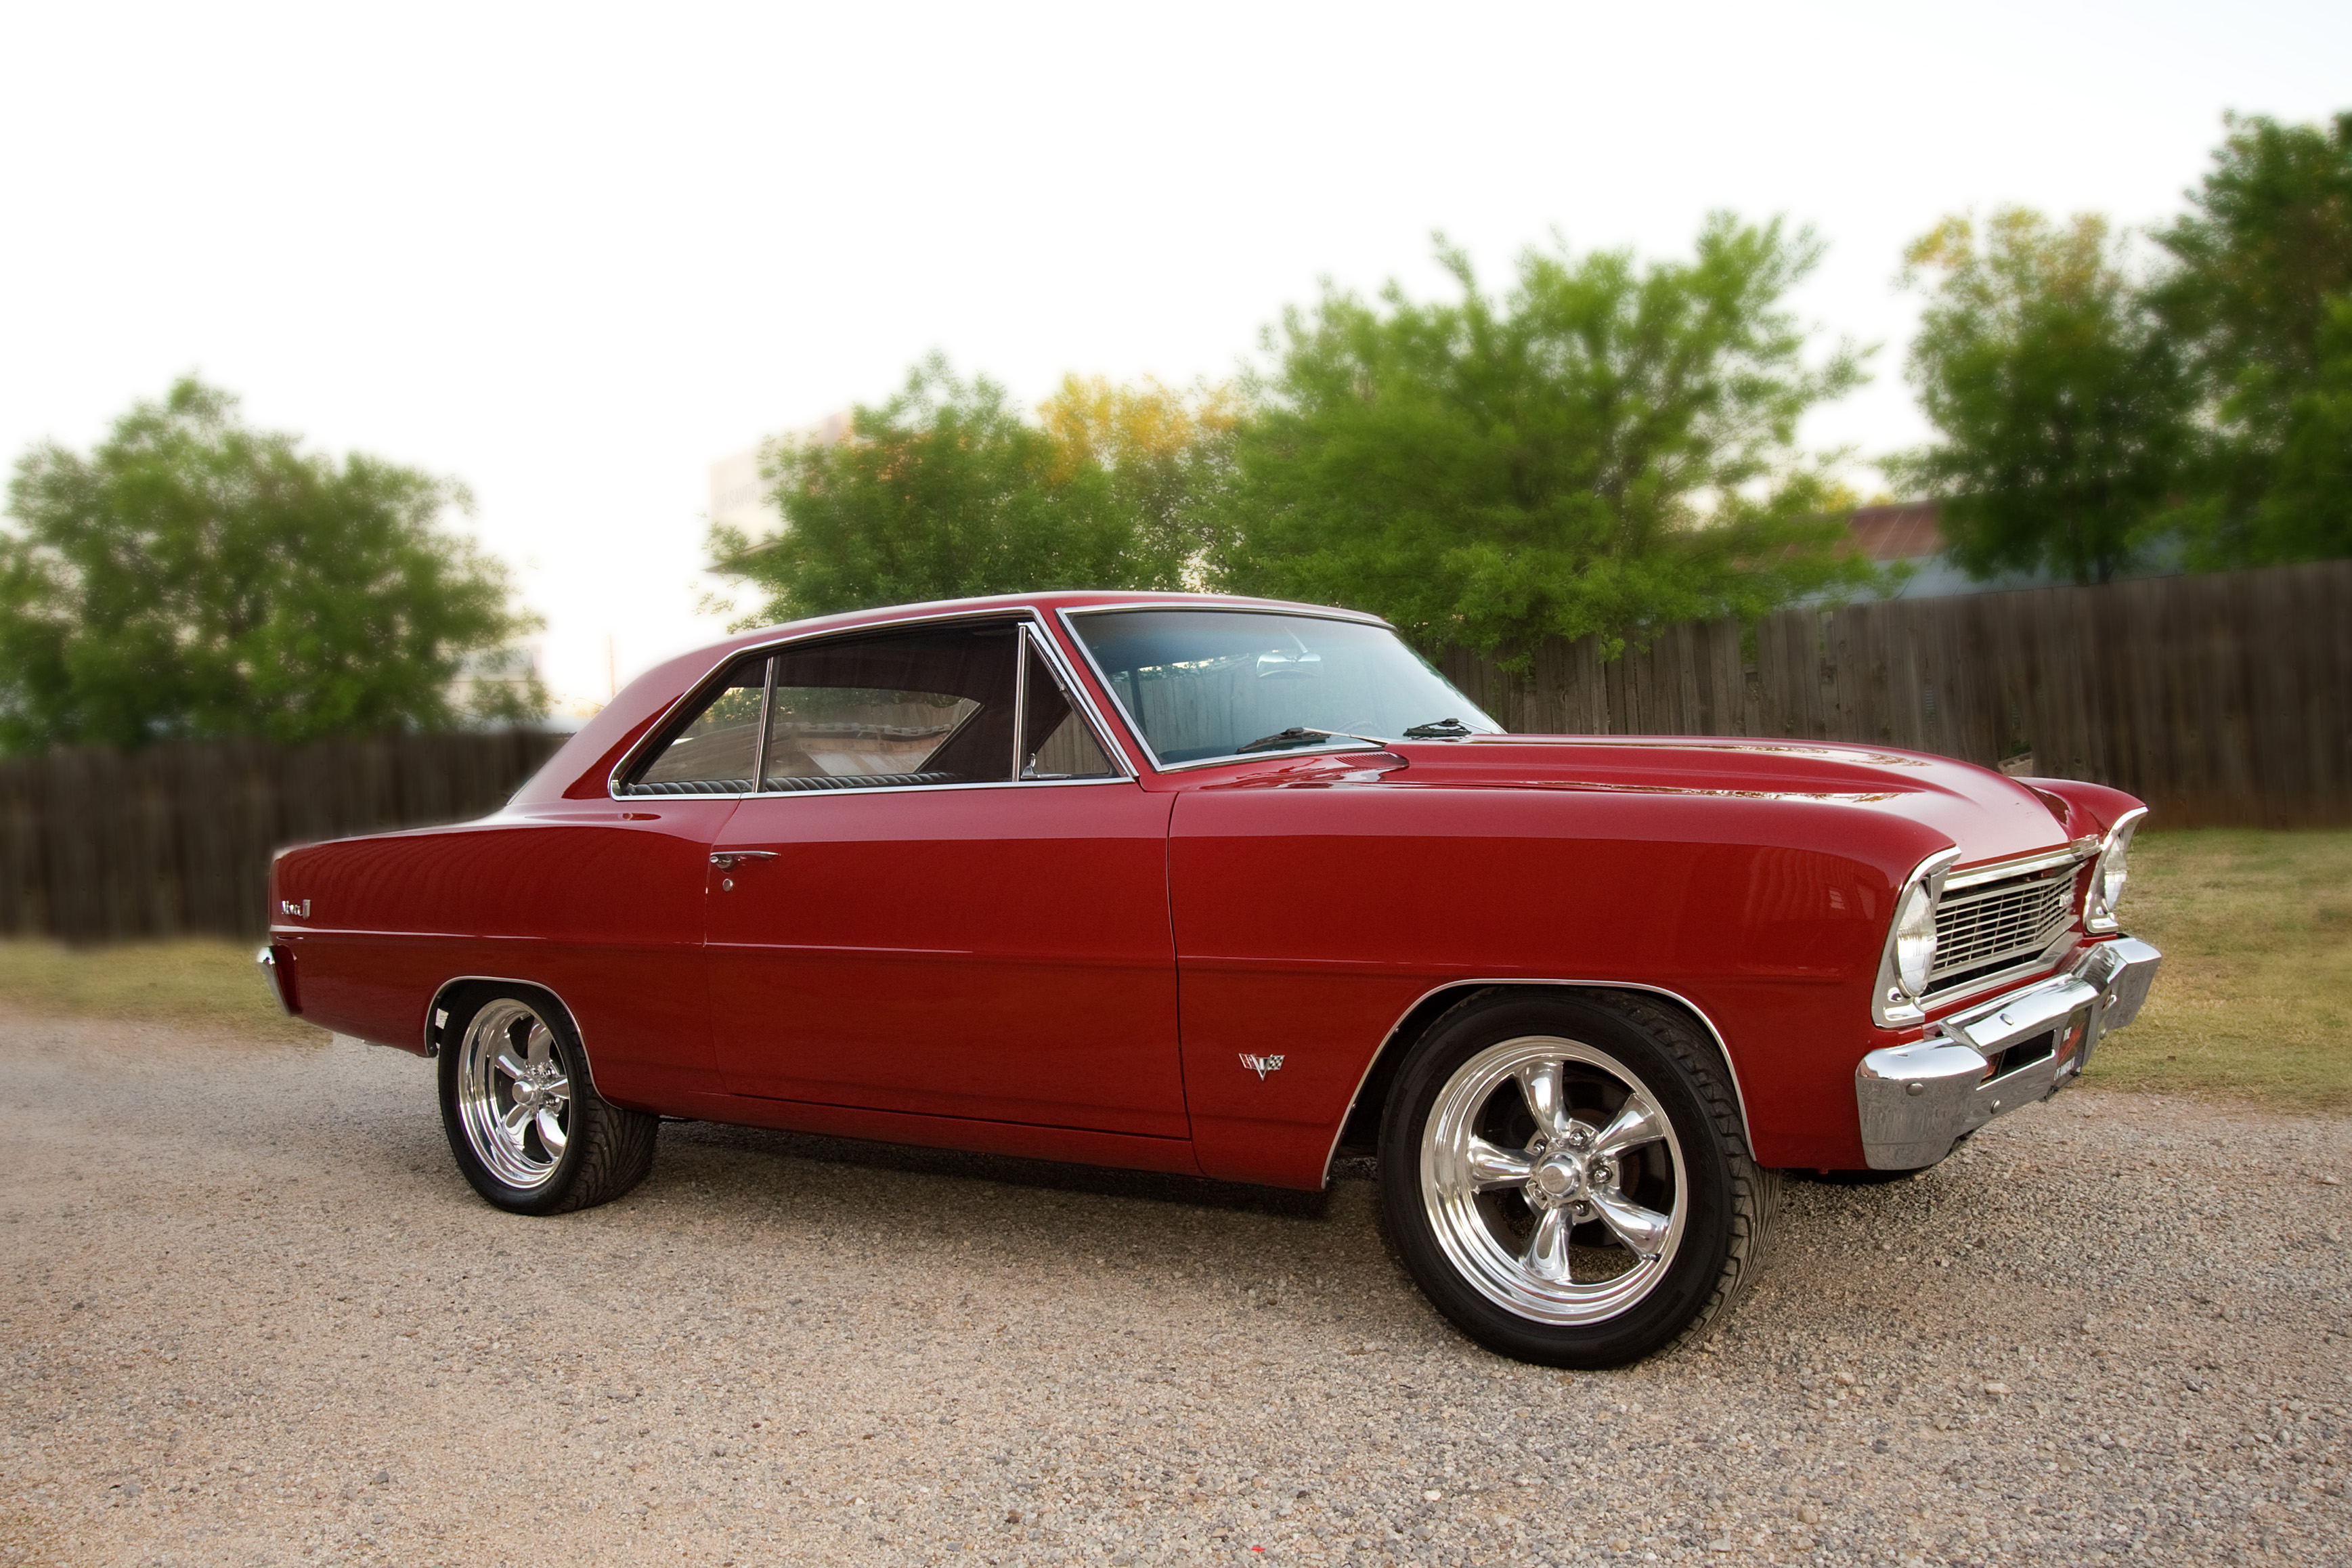 Muscle Car Engines For Sale In Sa